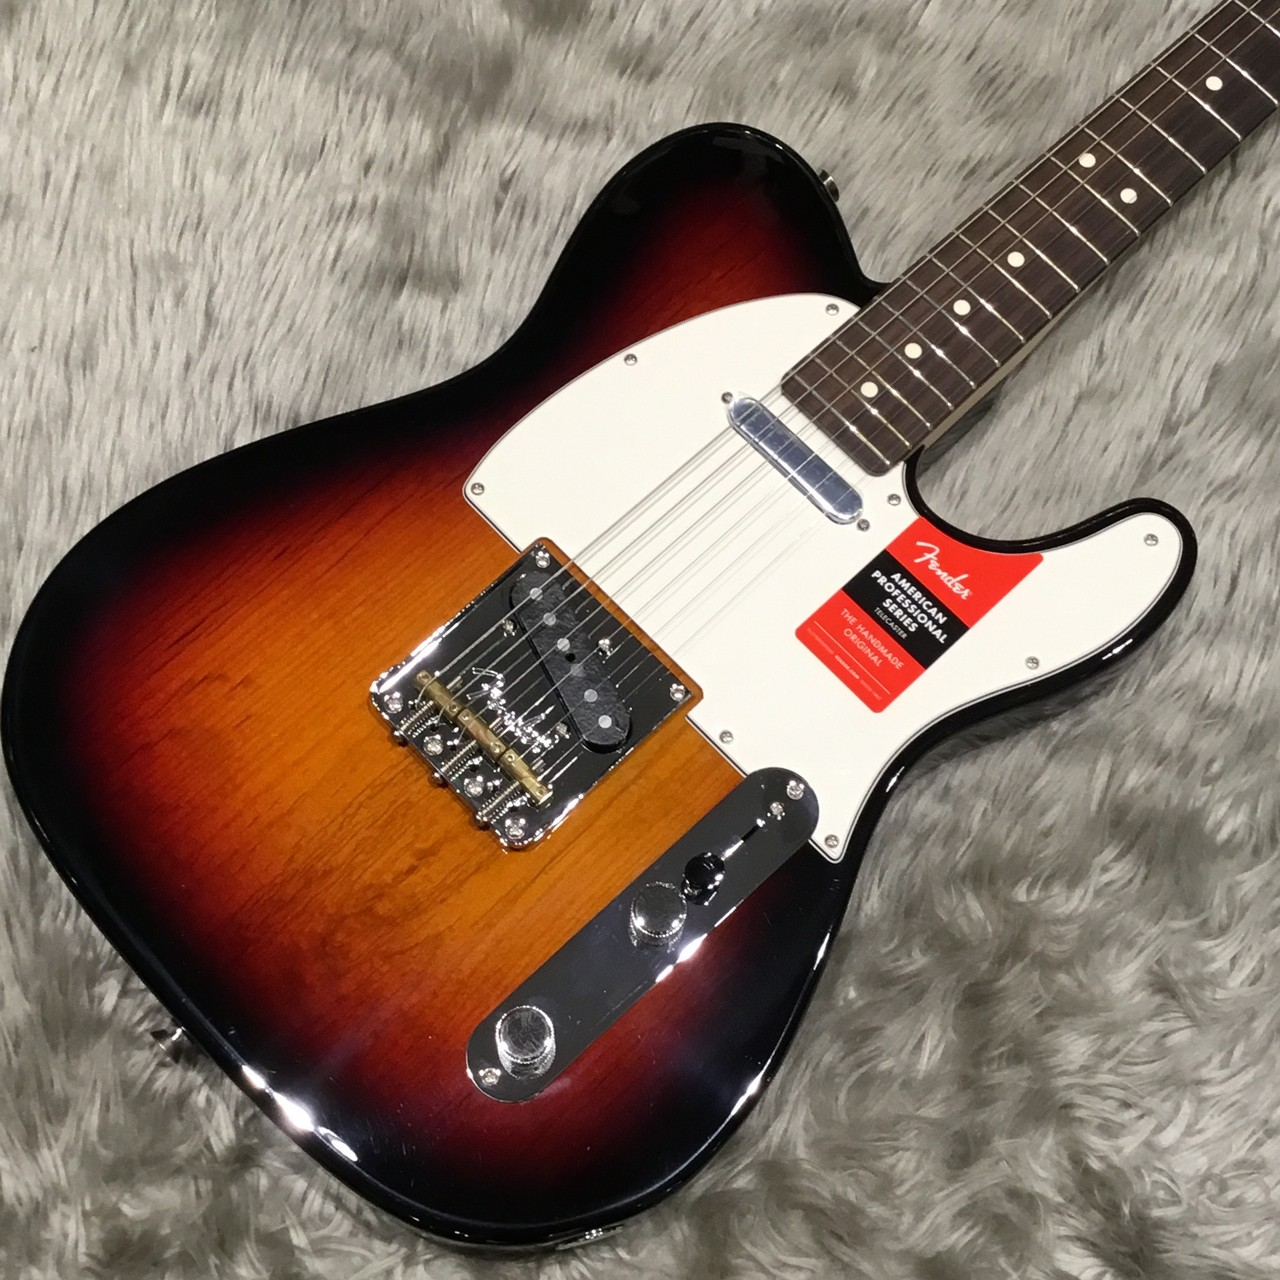 Fender (フェンダー)American Professional Telecaster / Rosewood指板 テレキャスター【送料無料で即納可能】